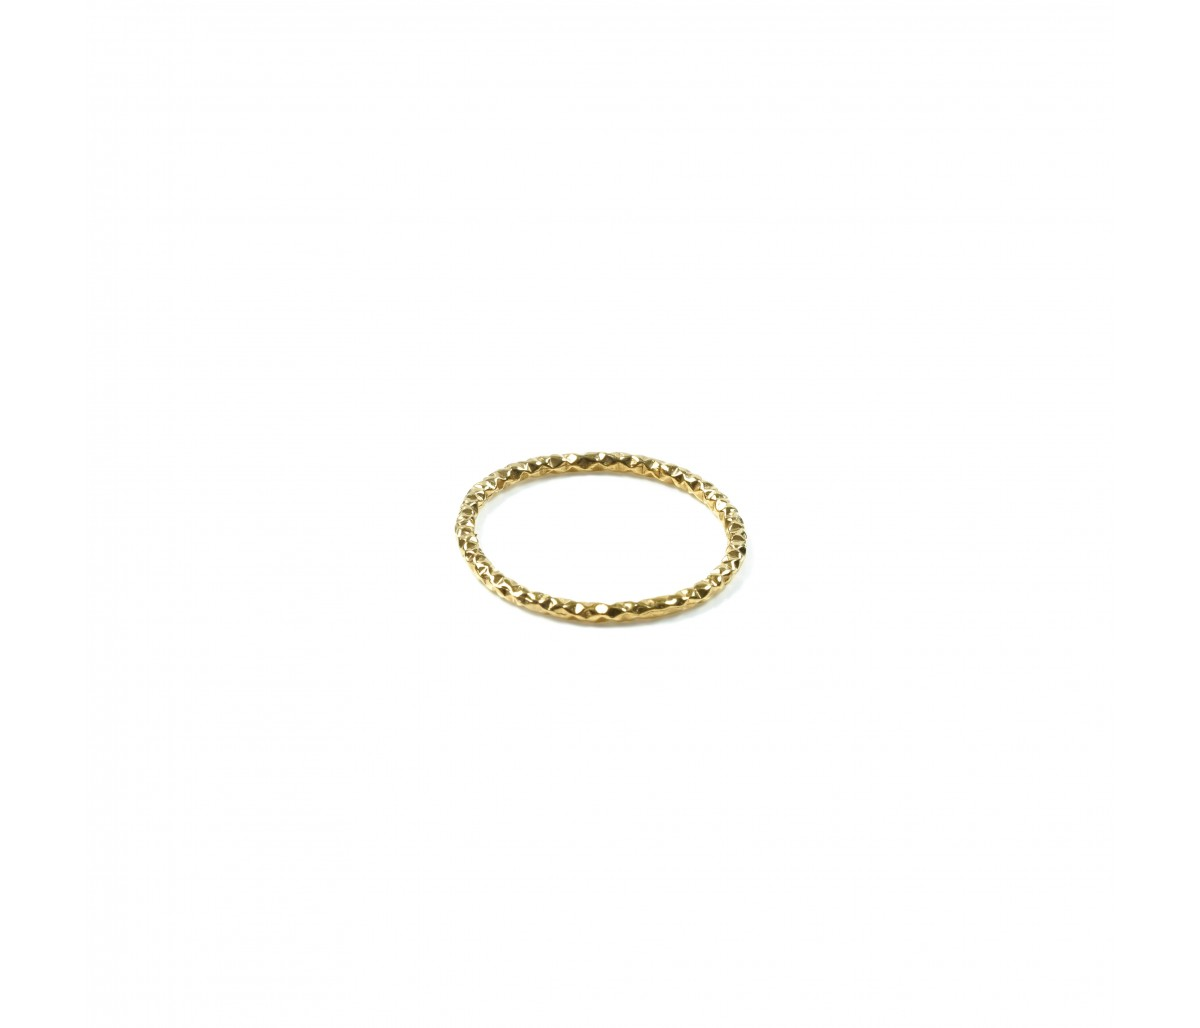 Bague Magy en or 19k